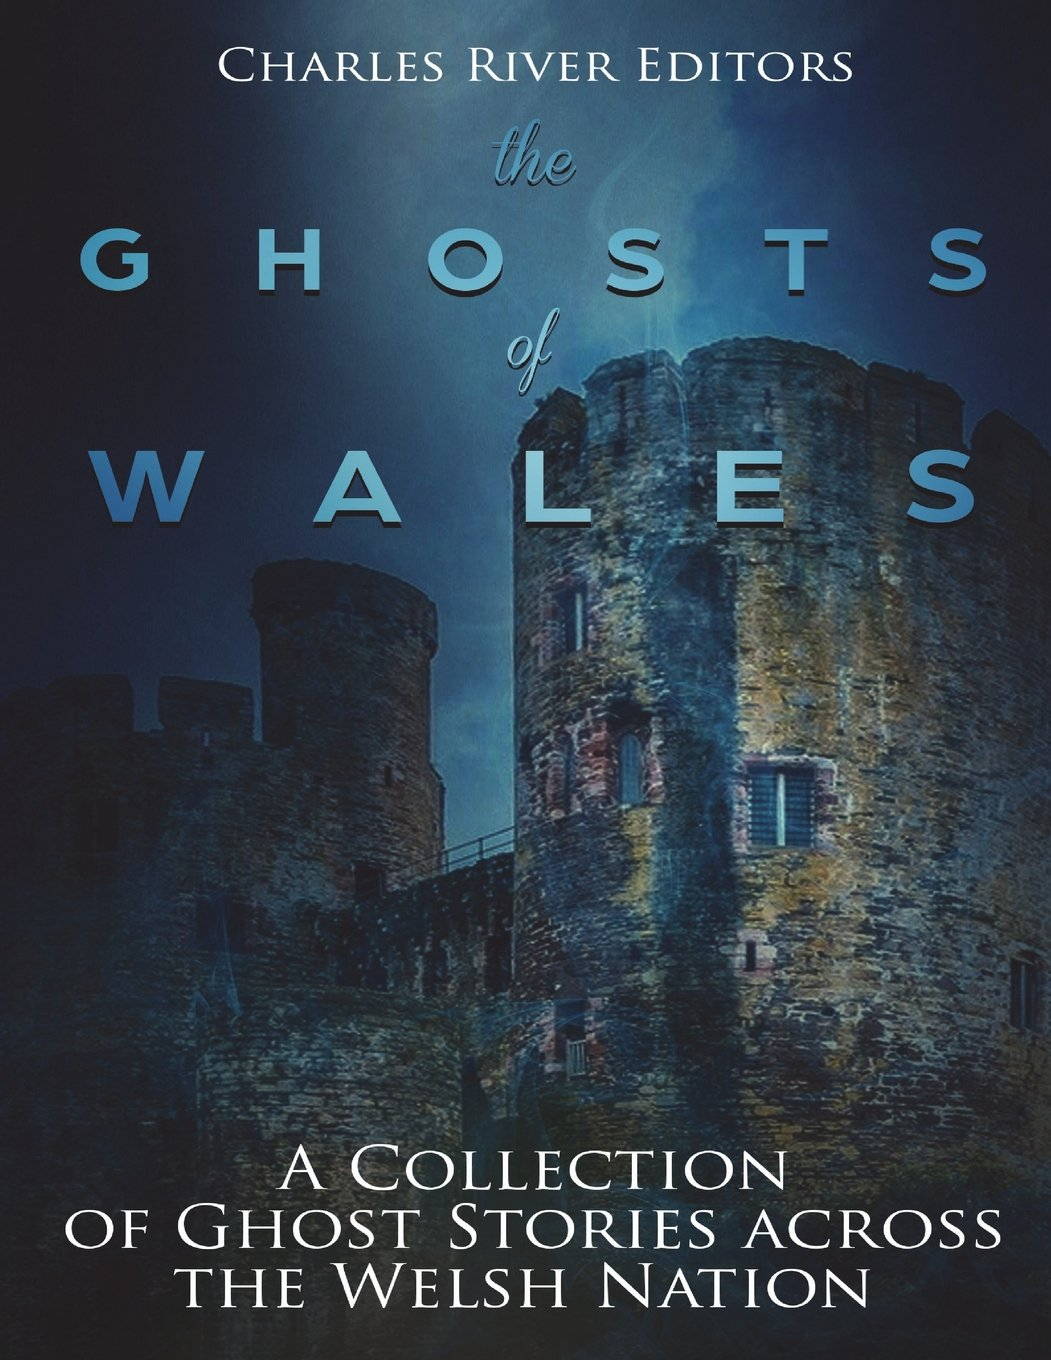 The Ghosts of Wales: A Collection of Ghost Stories across